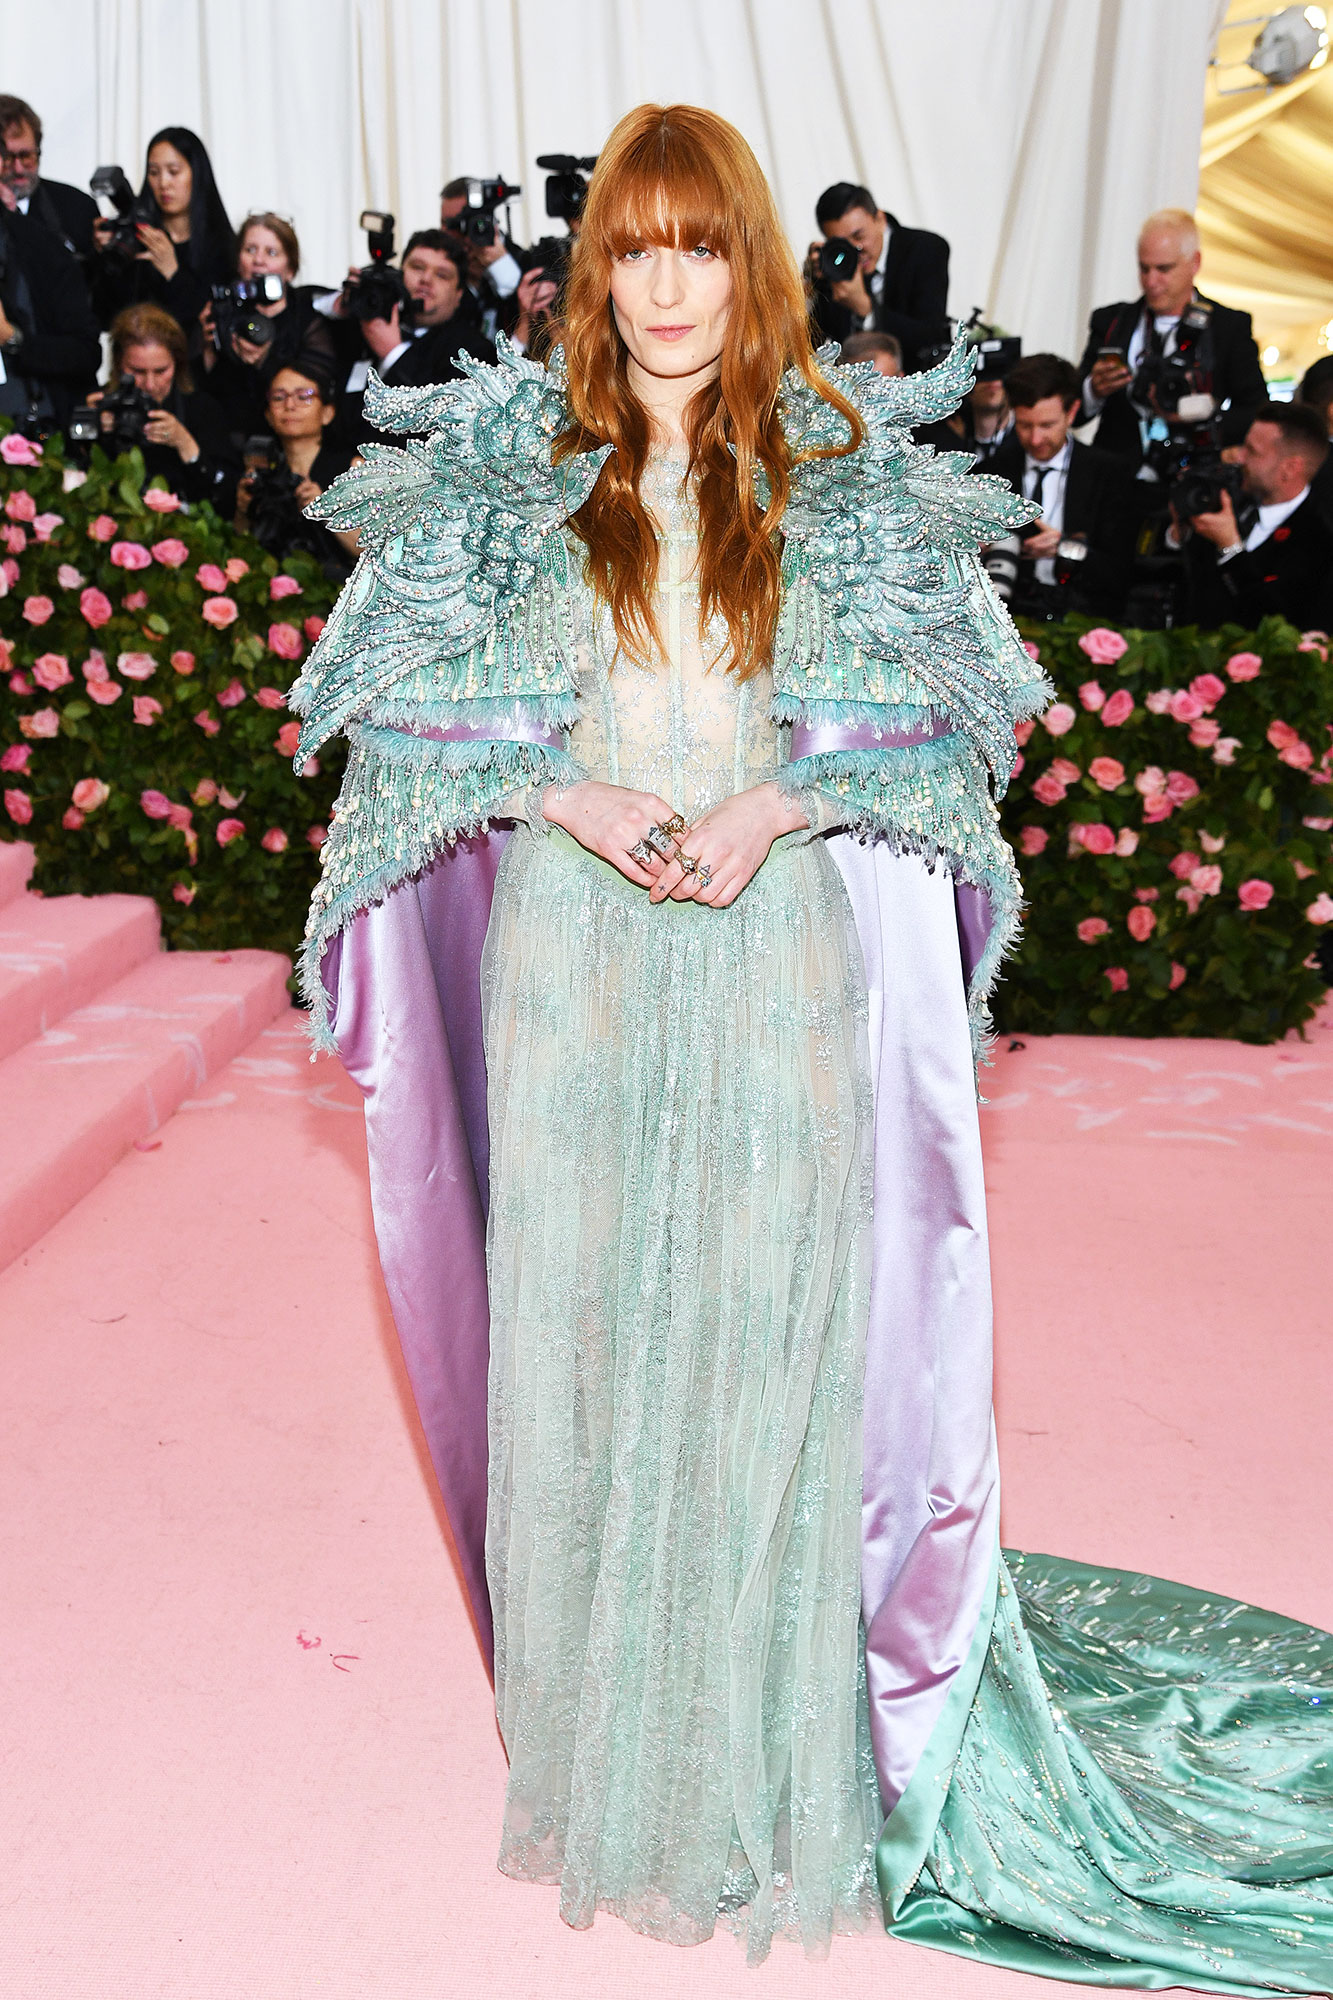 Florence Welch met gala 2019 - Wearing an avian-inspired teal Gucci design.